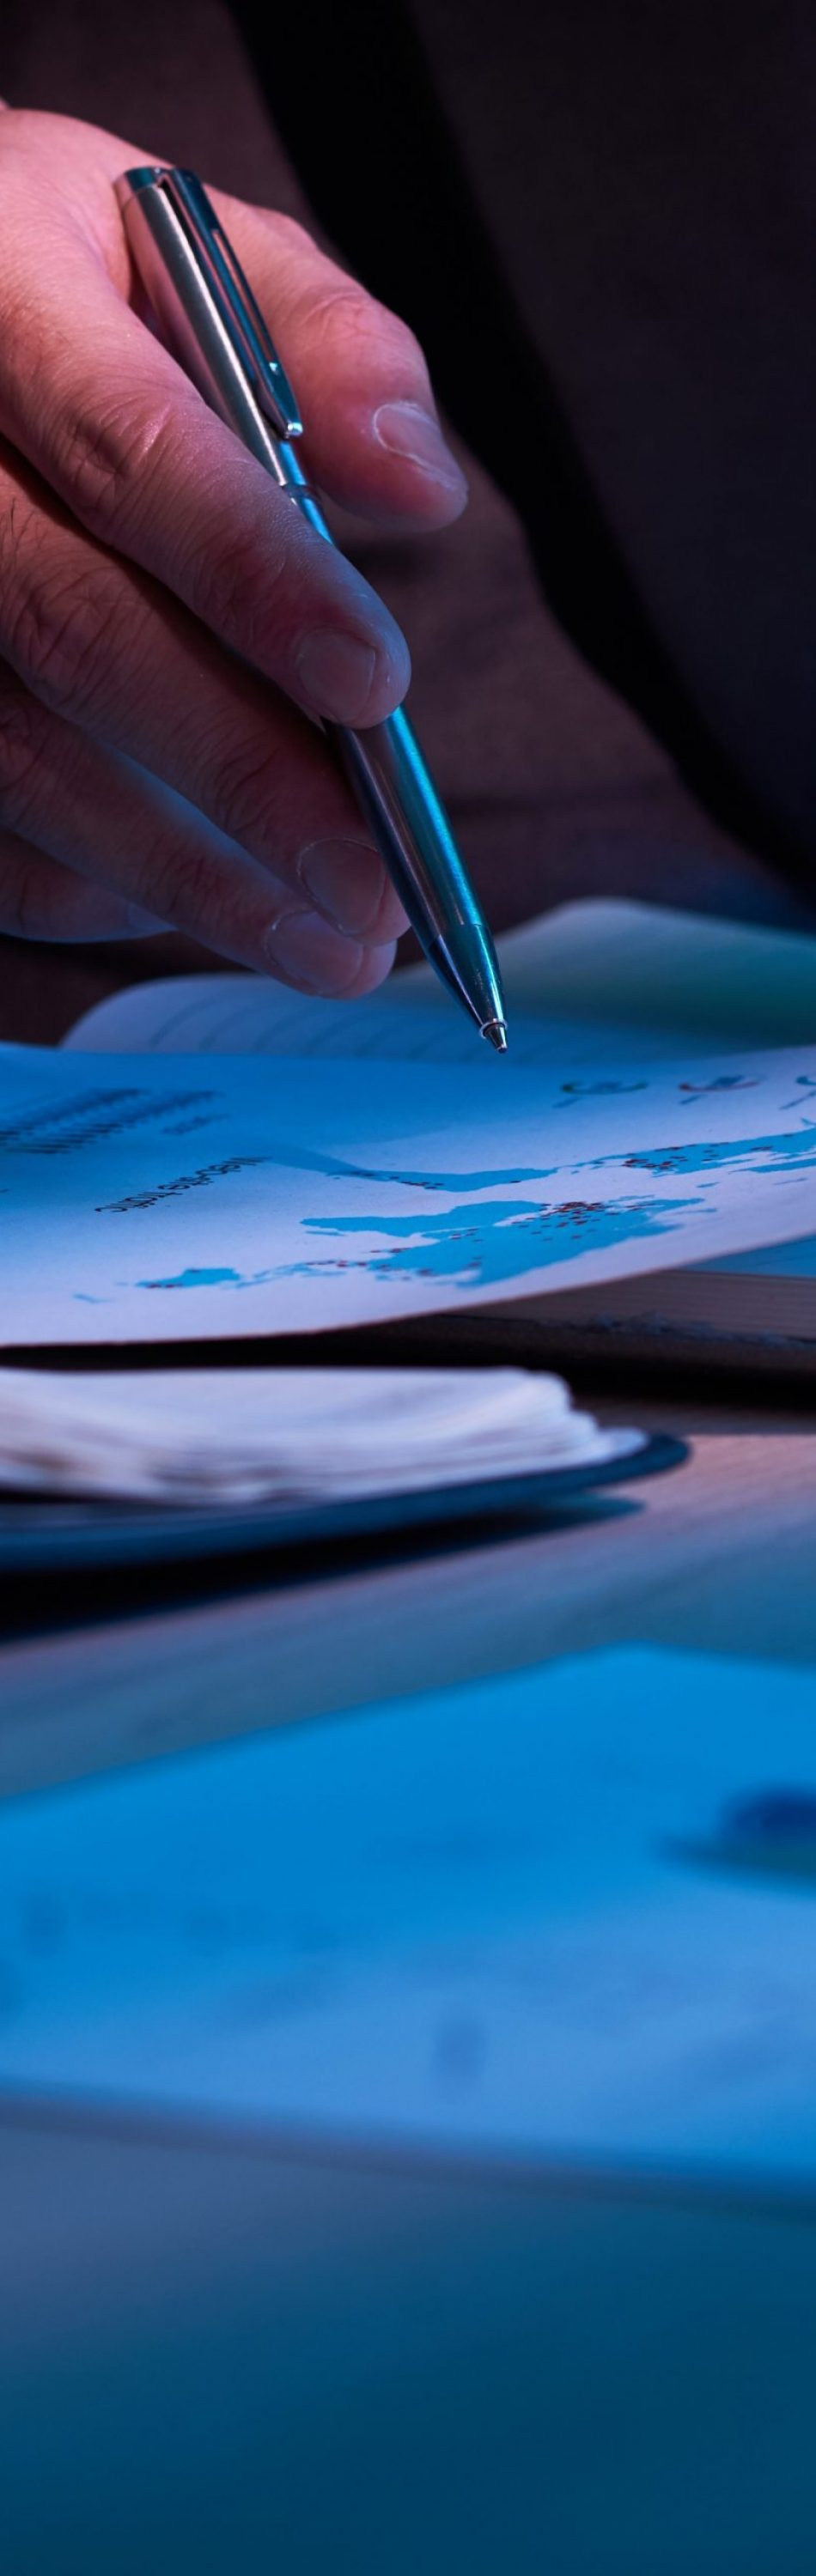 Close-up image of business partners working with financial documents